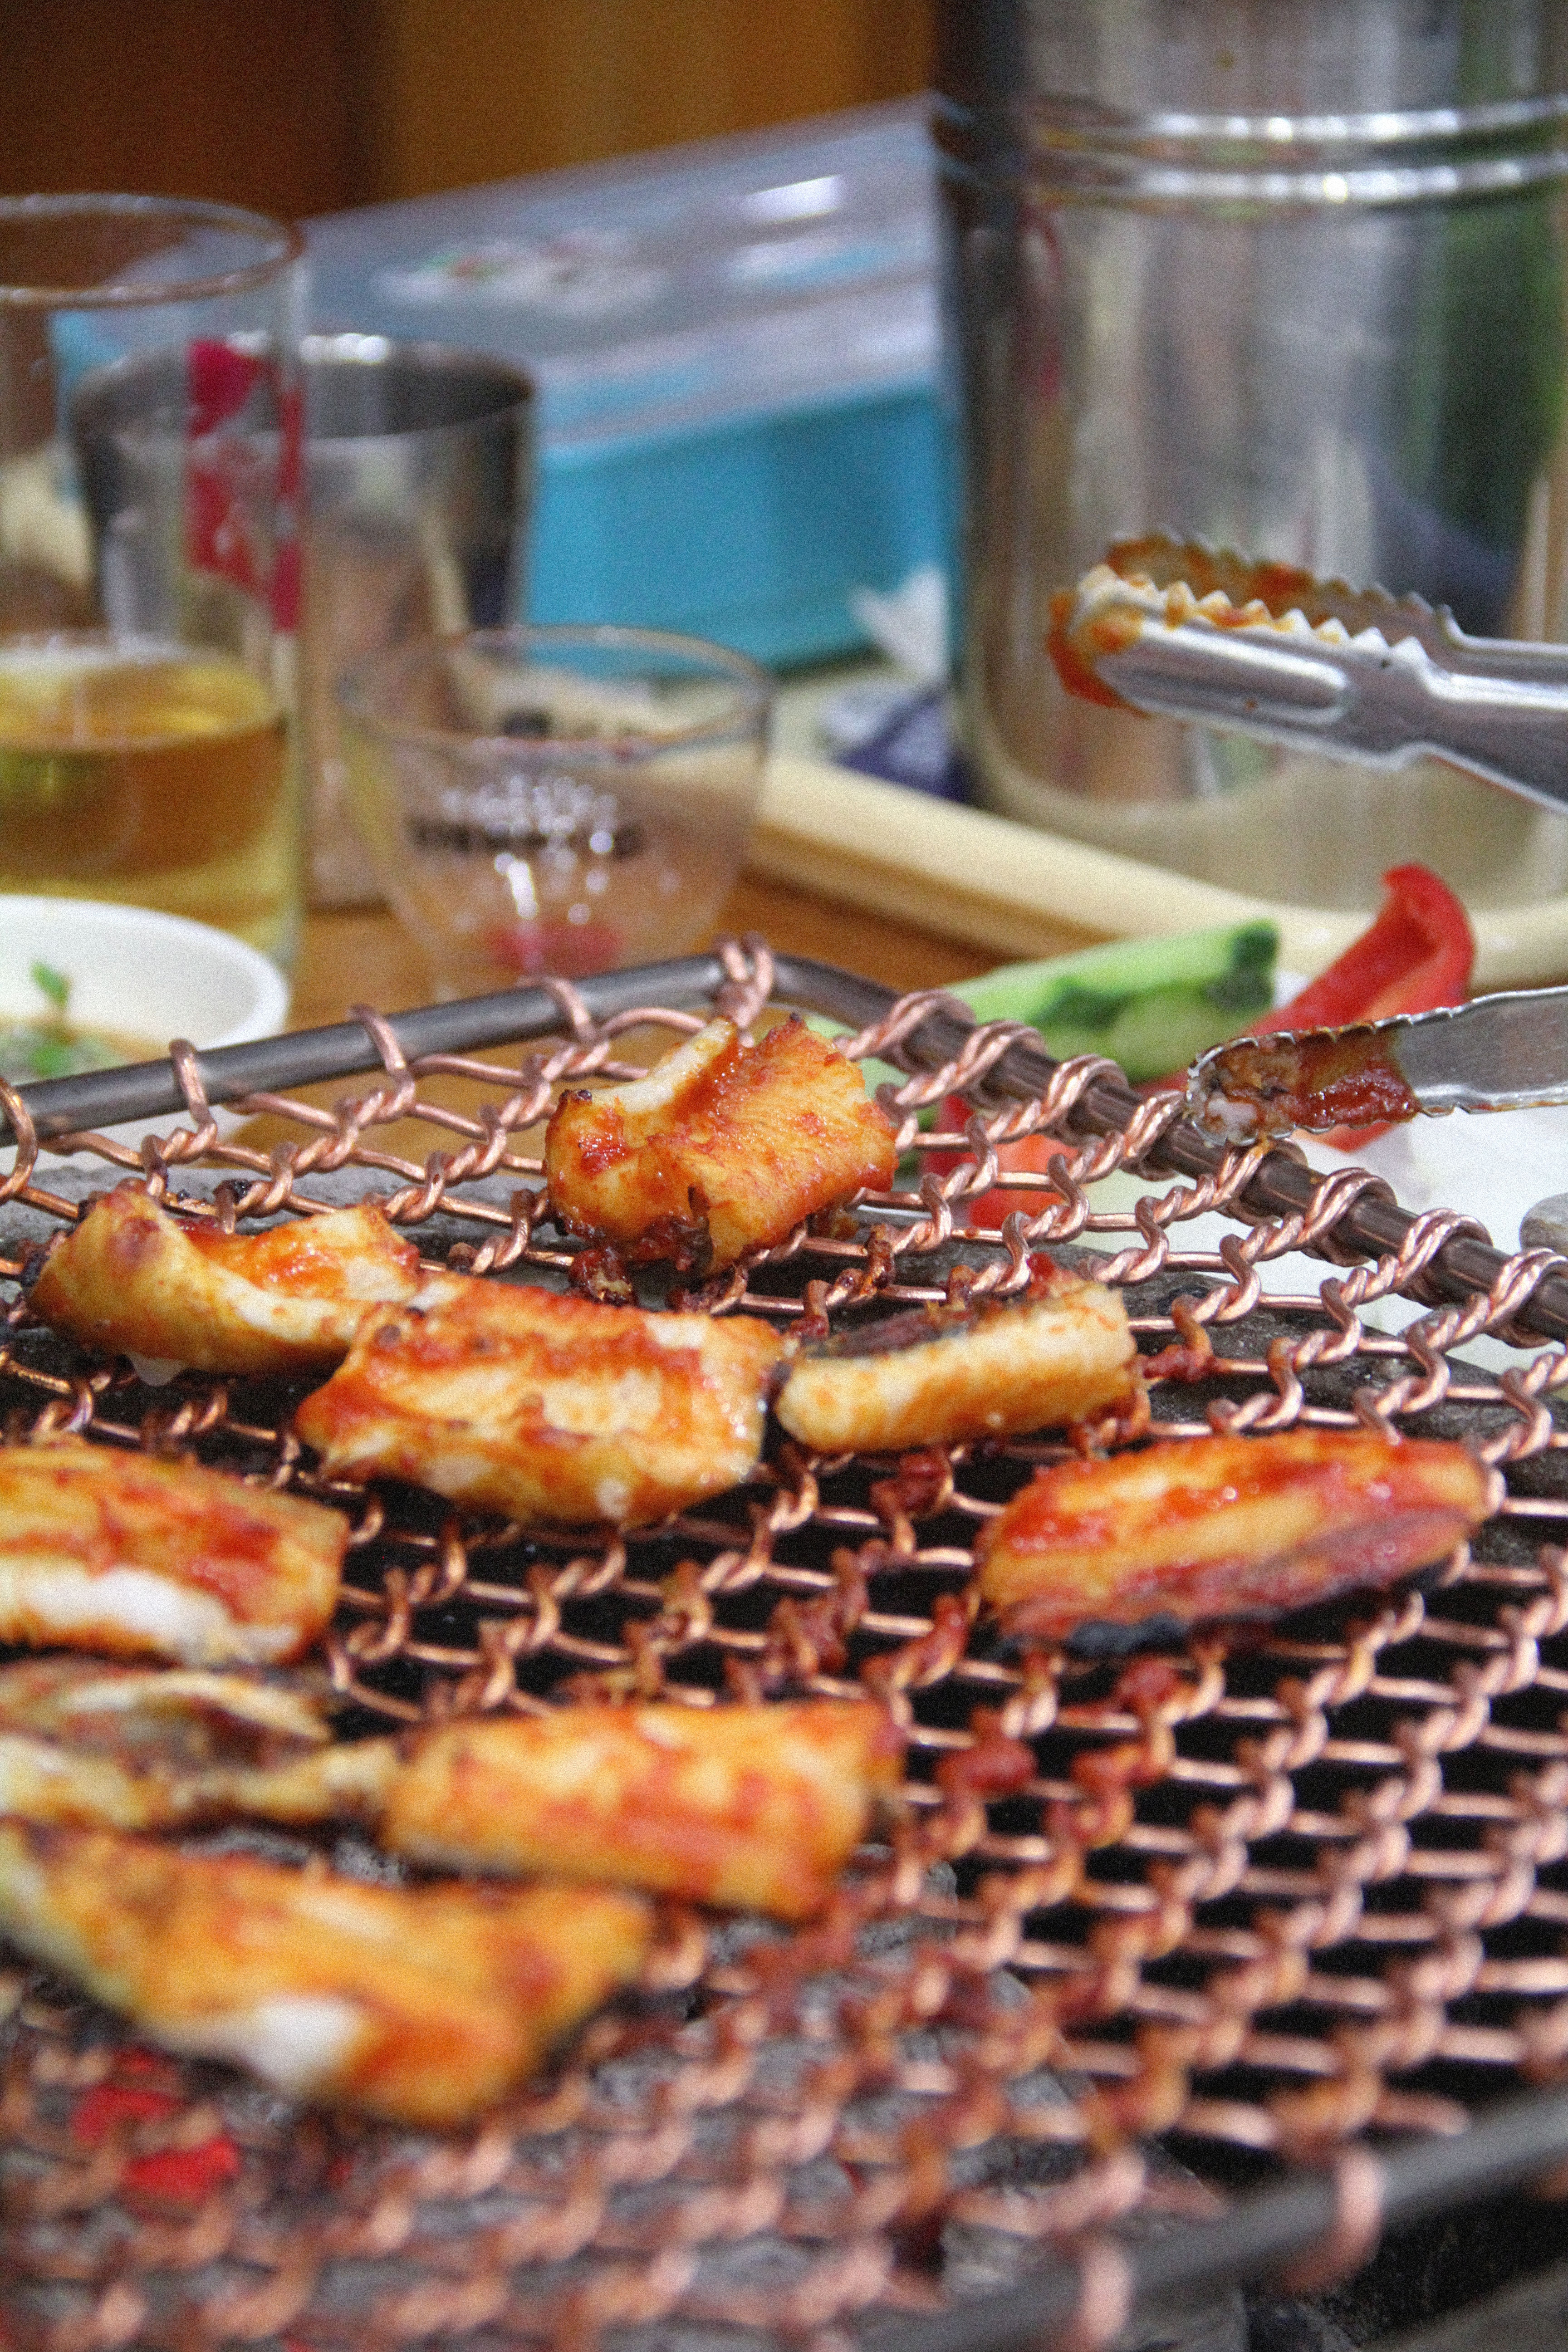 Grilled eels at Suncheon, South Korea.